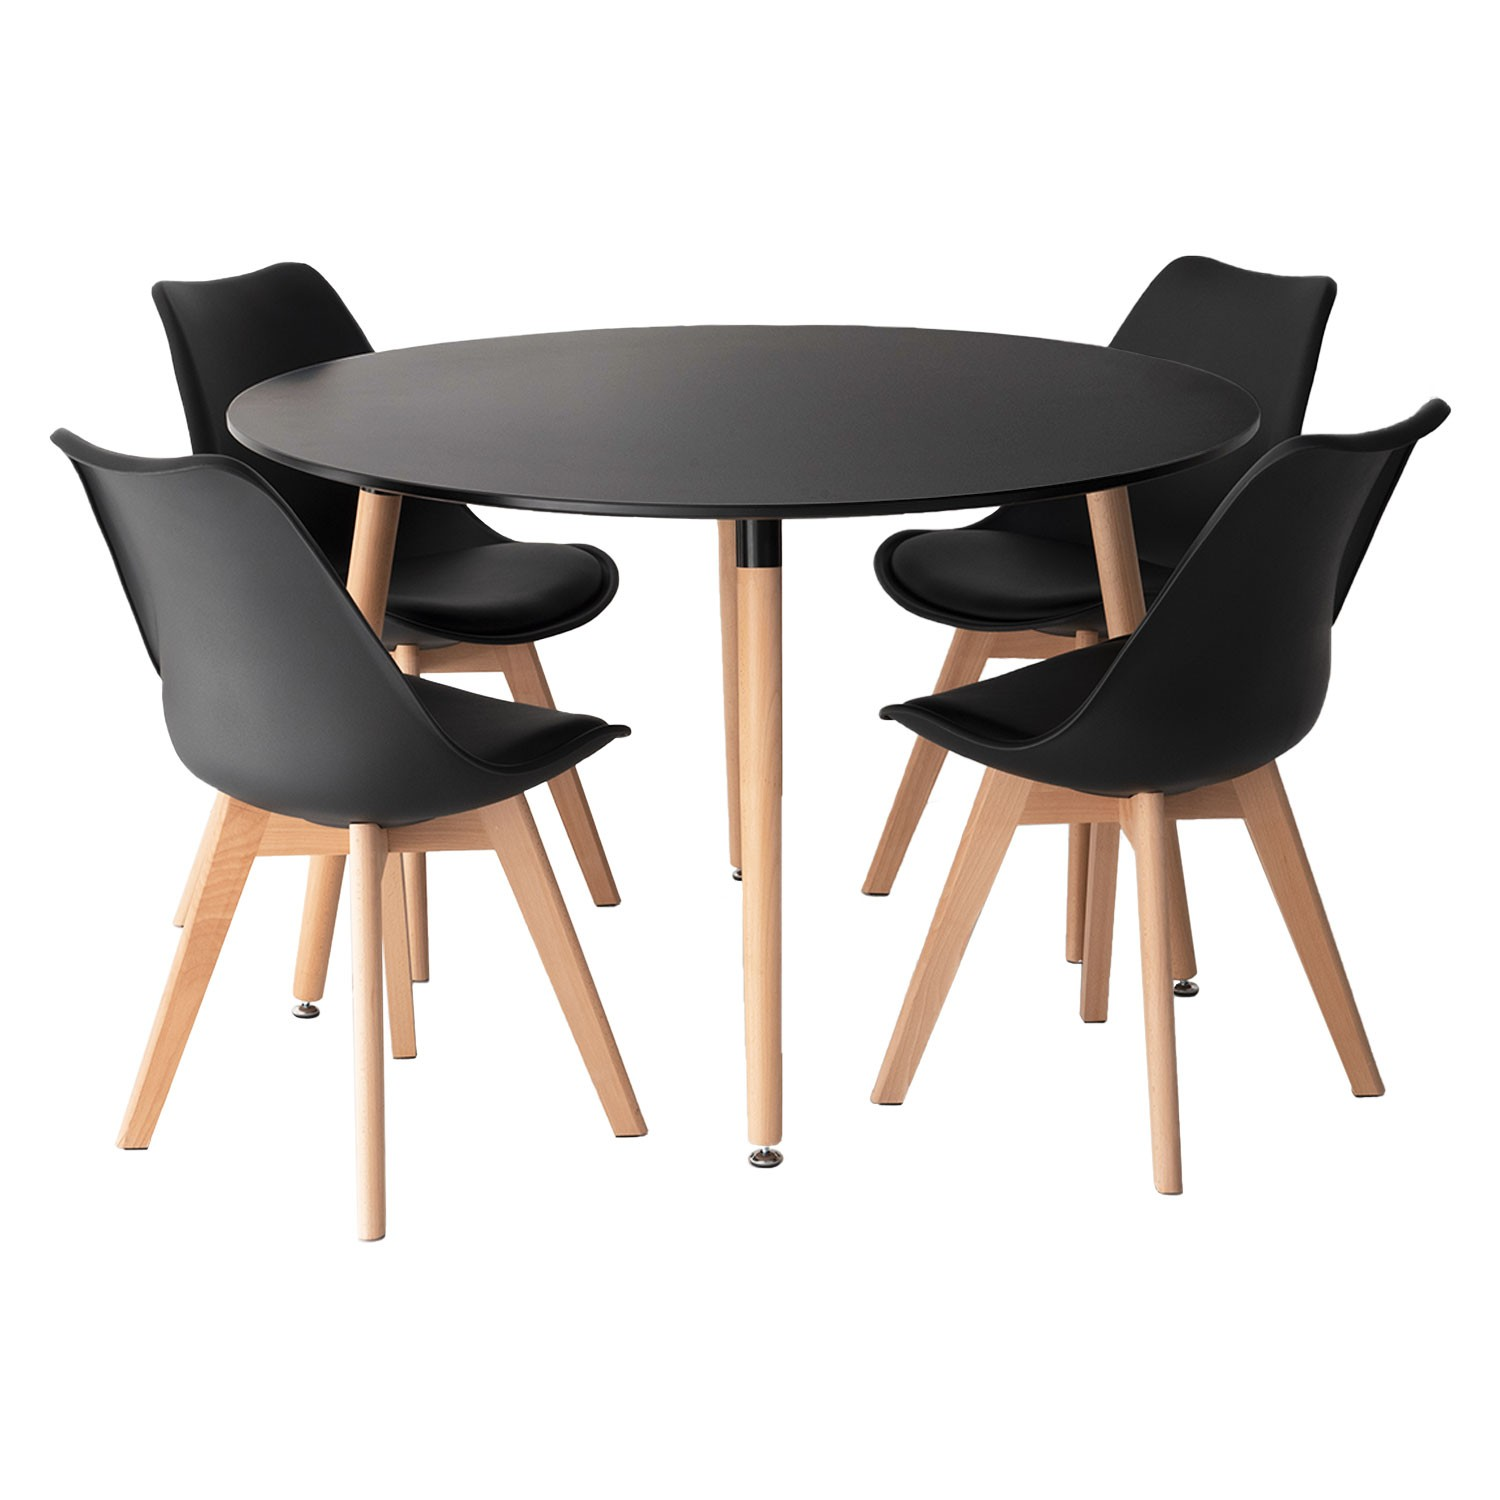 Table et chaises scandinaves noires Liz - Happy Garden